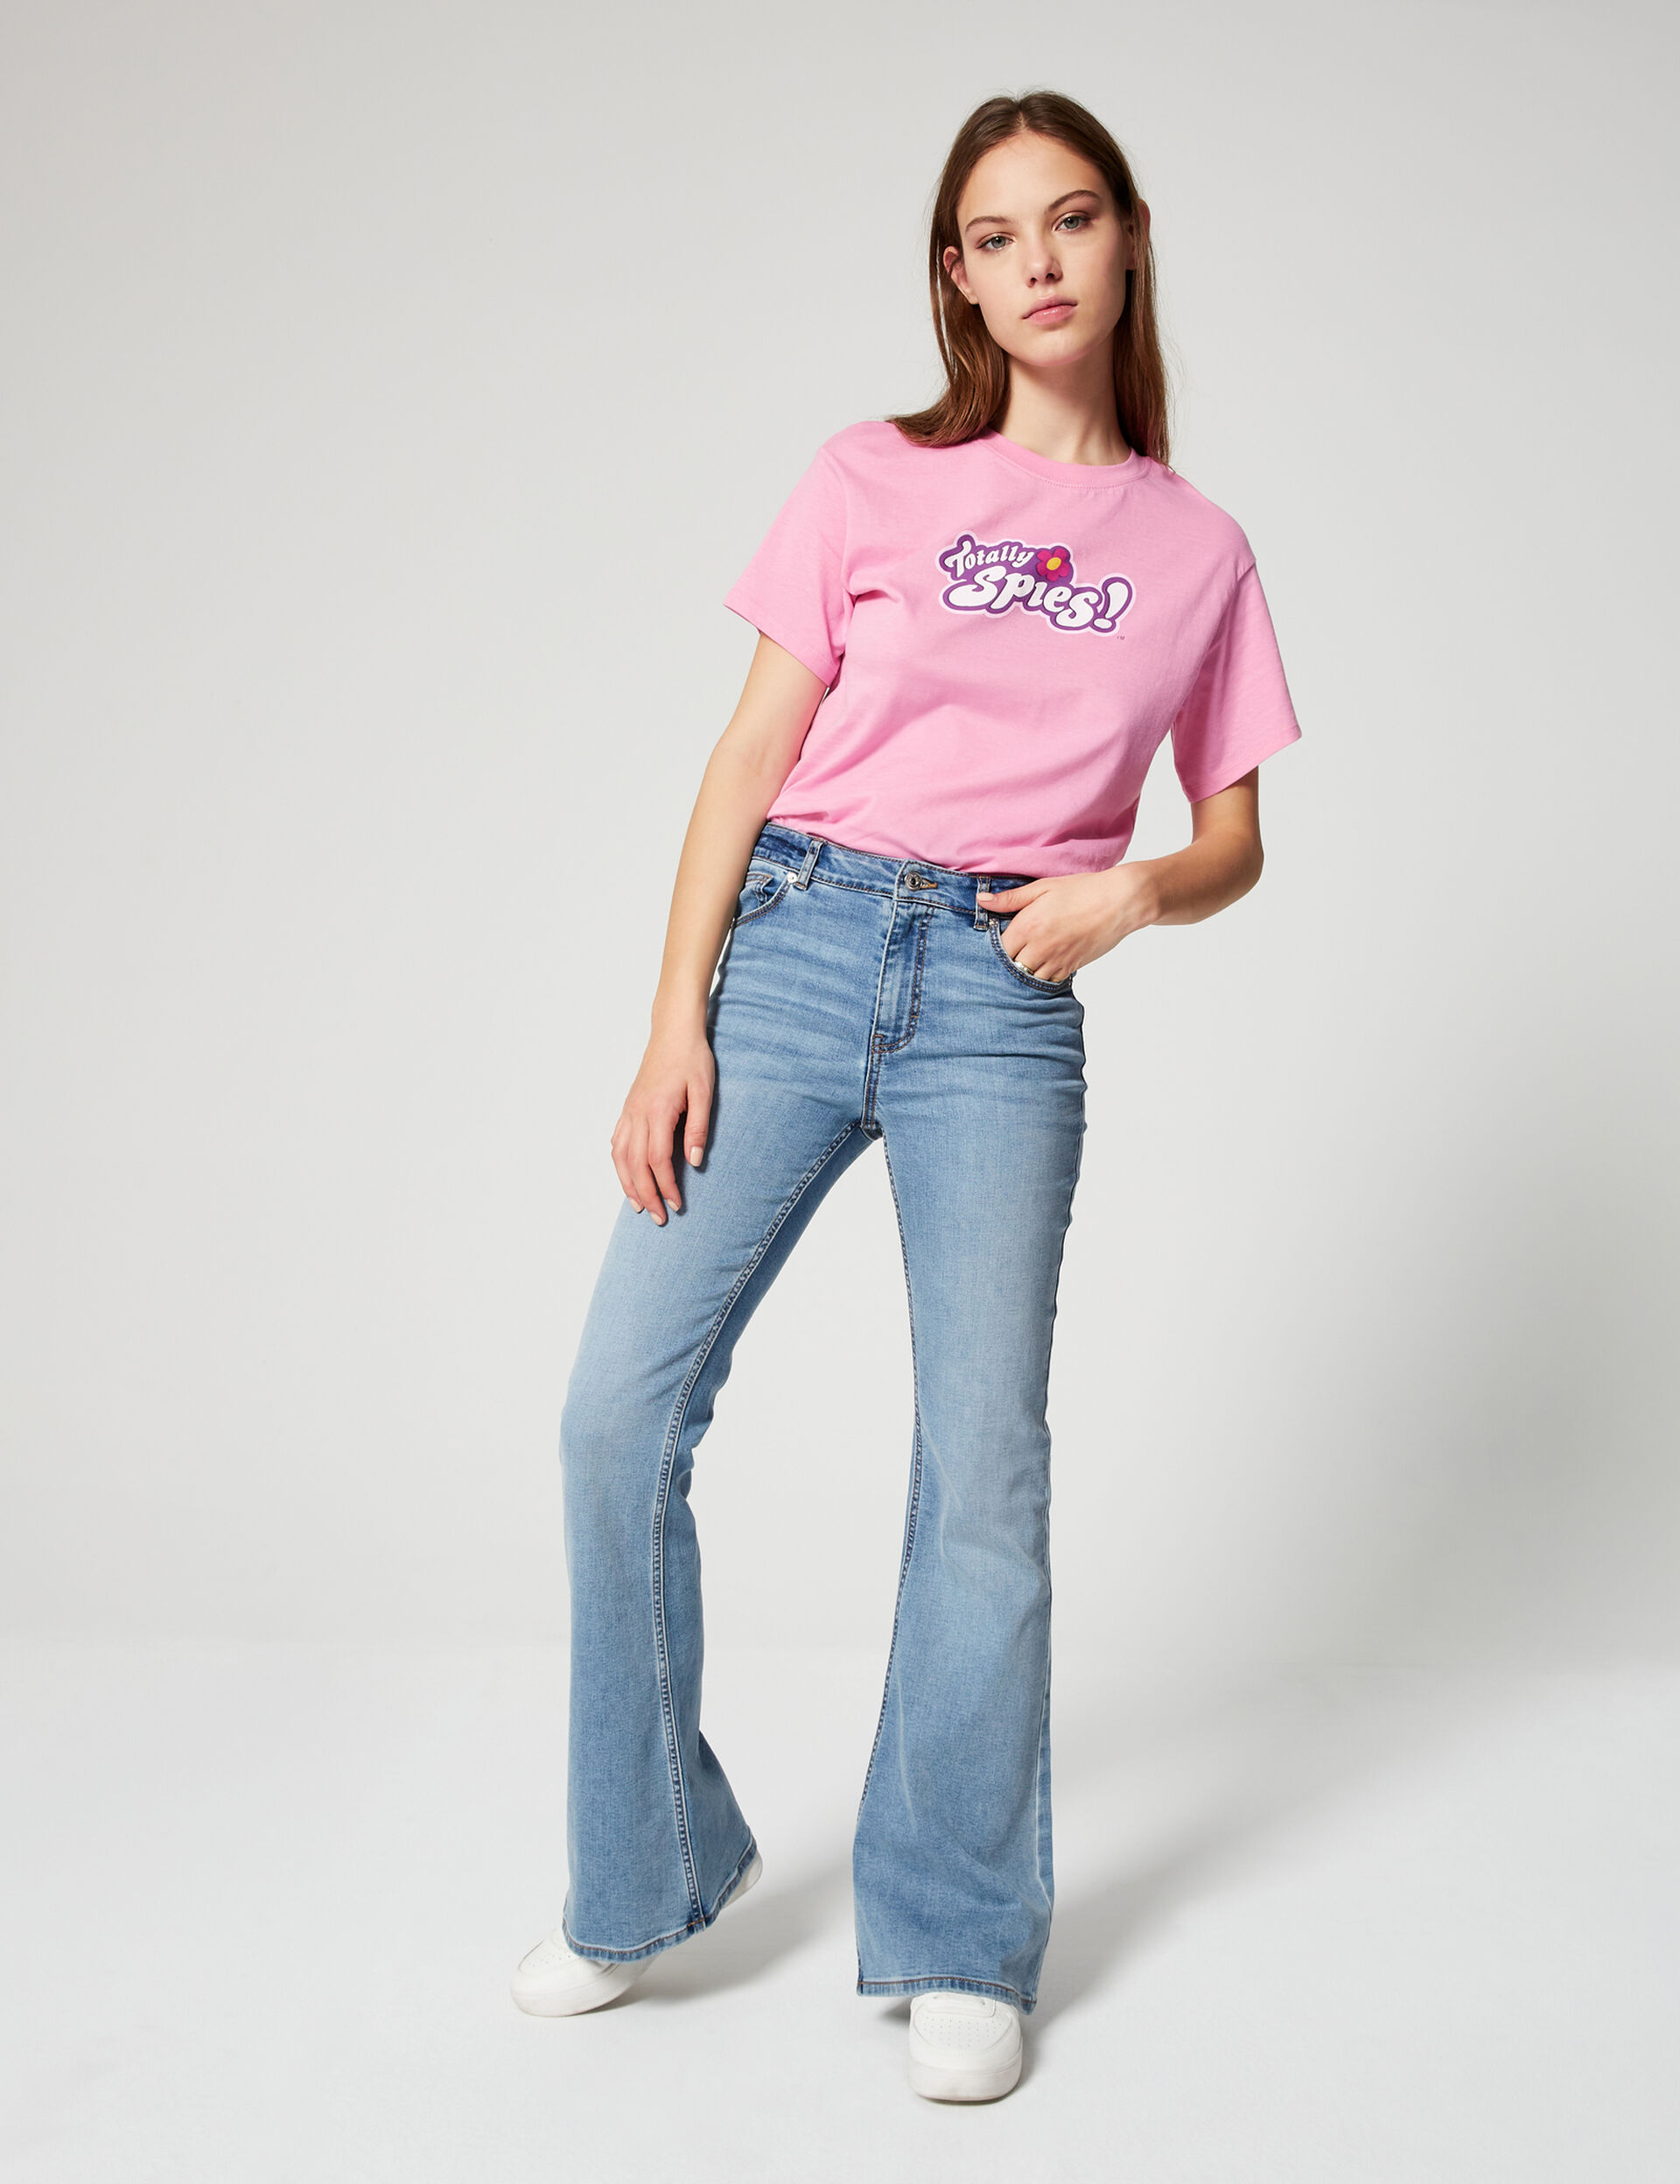 Tee-shirt Totally Spies